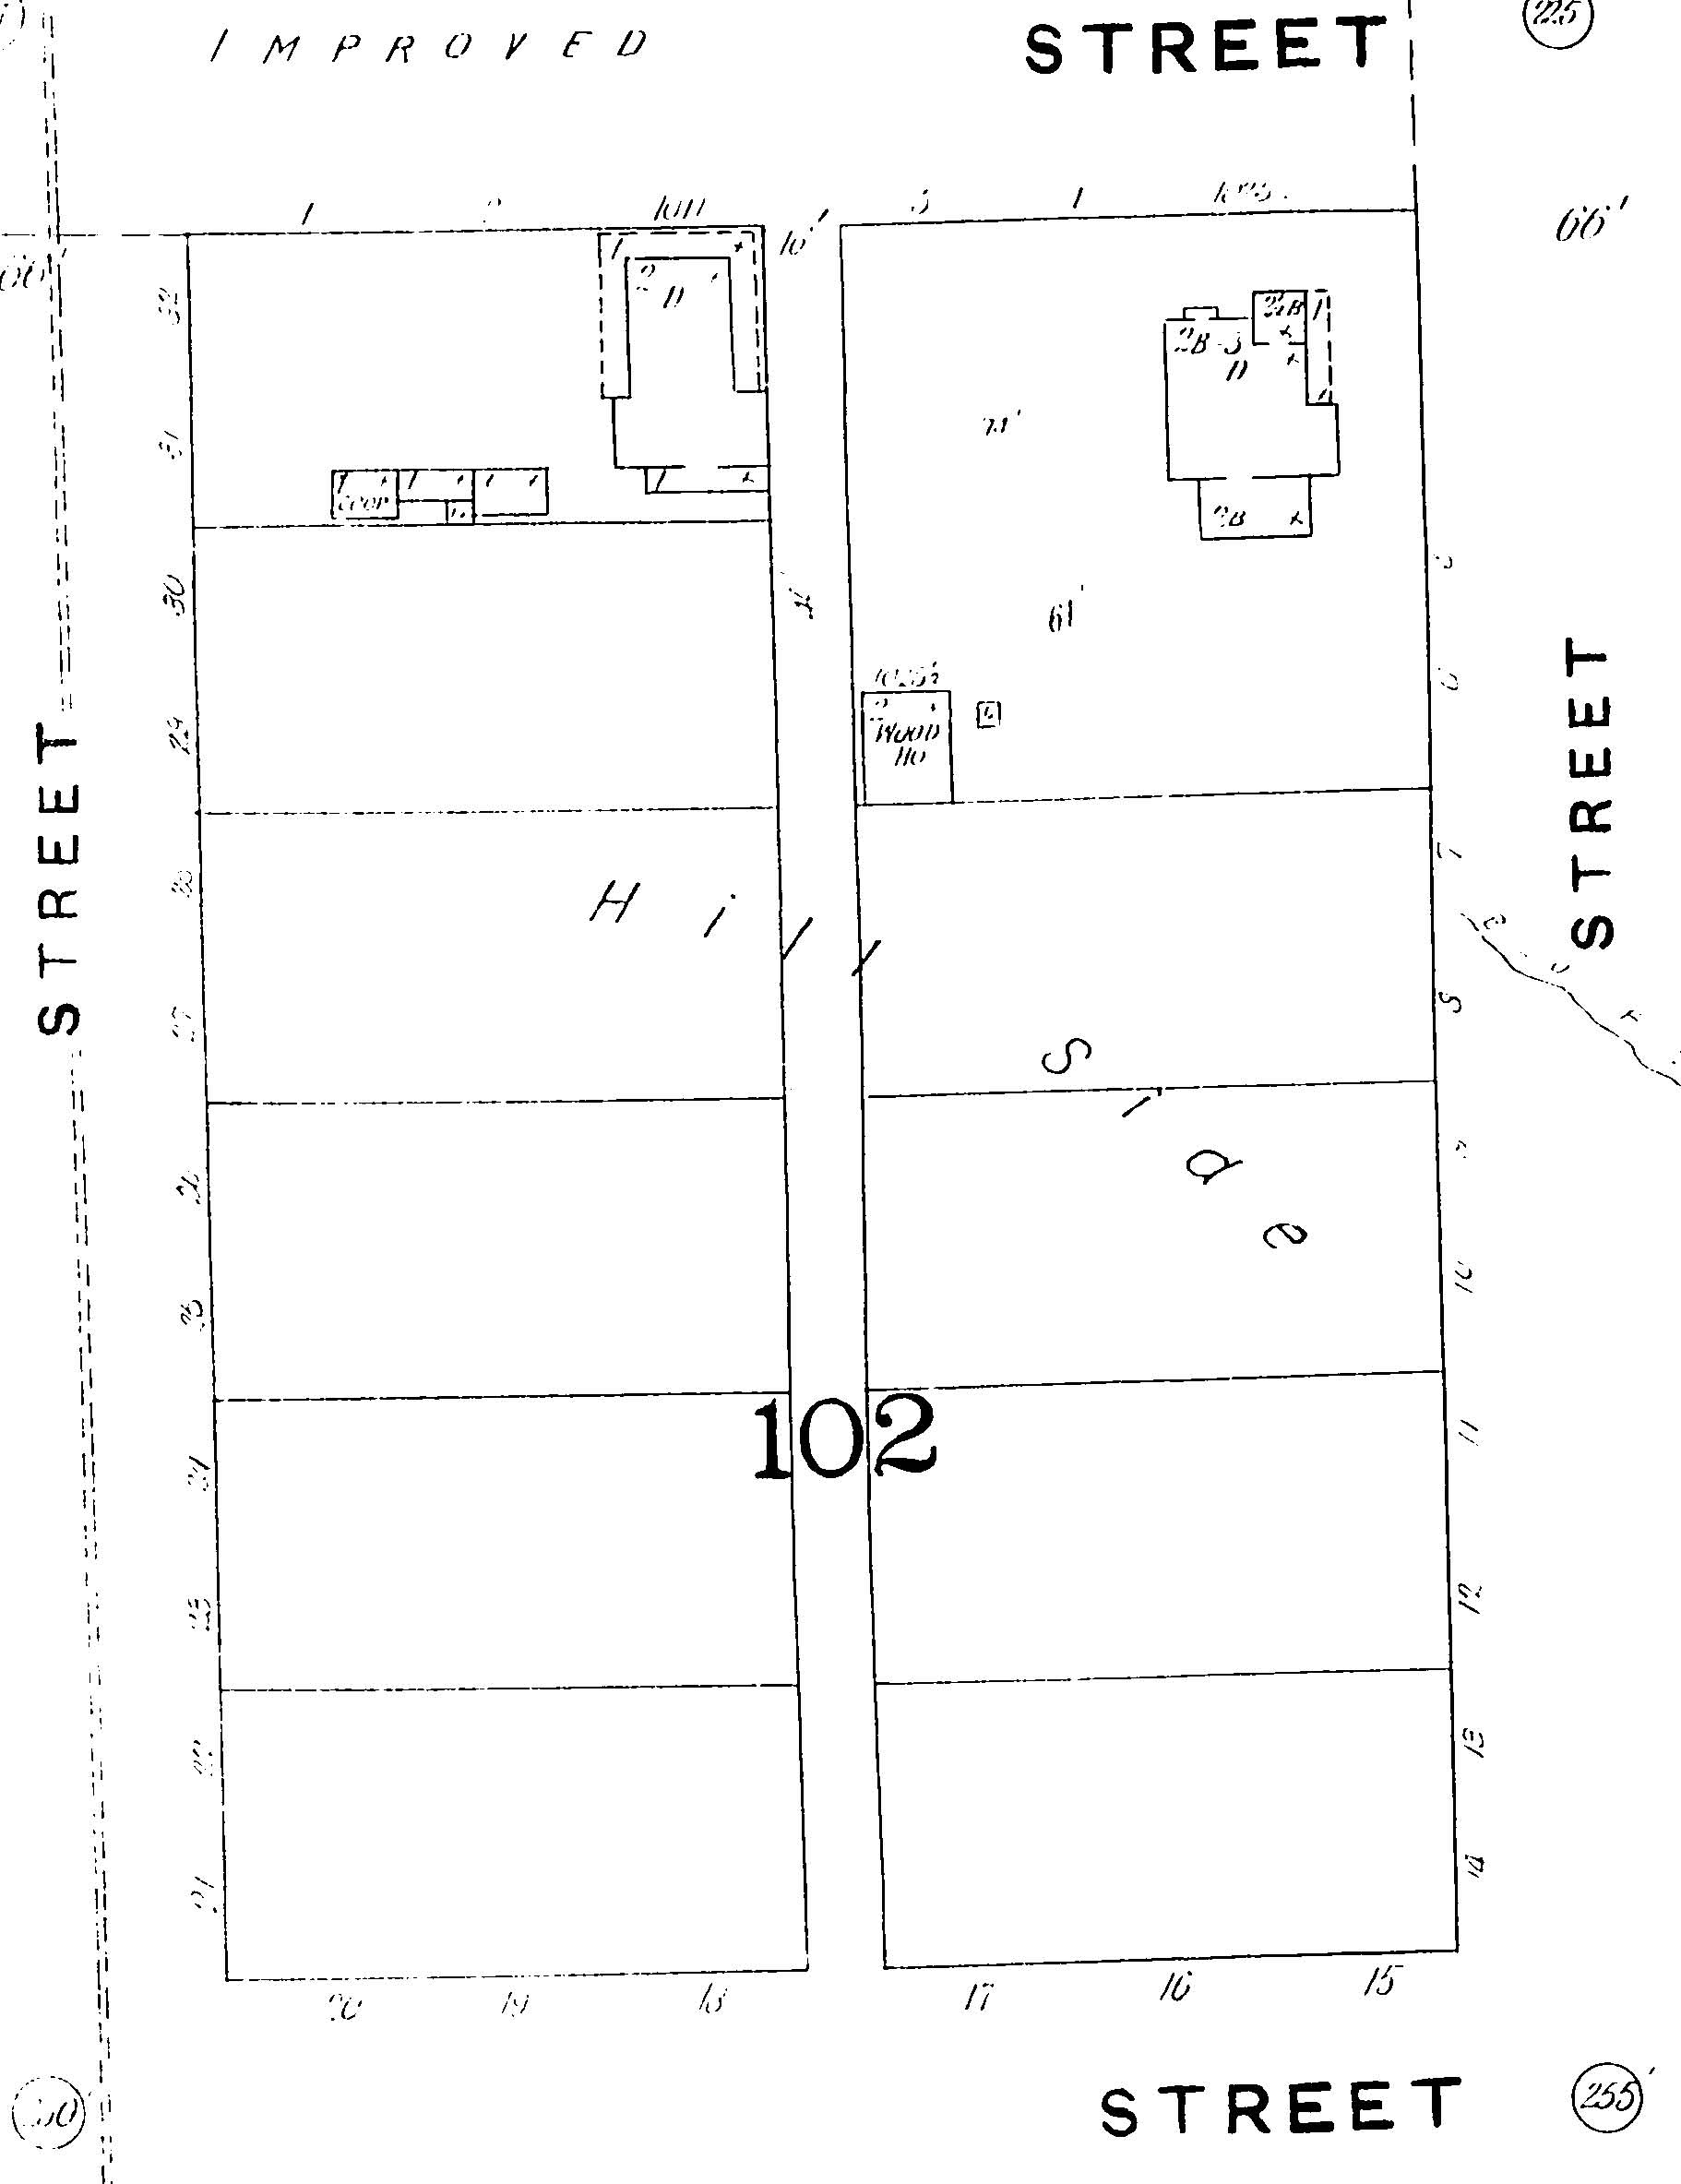 Sanborn Map - 1893 - Block102